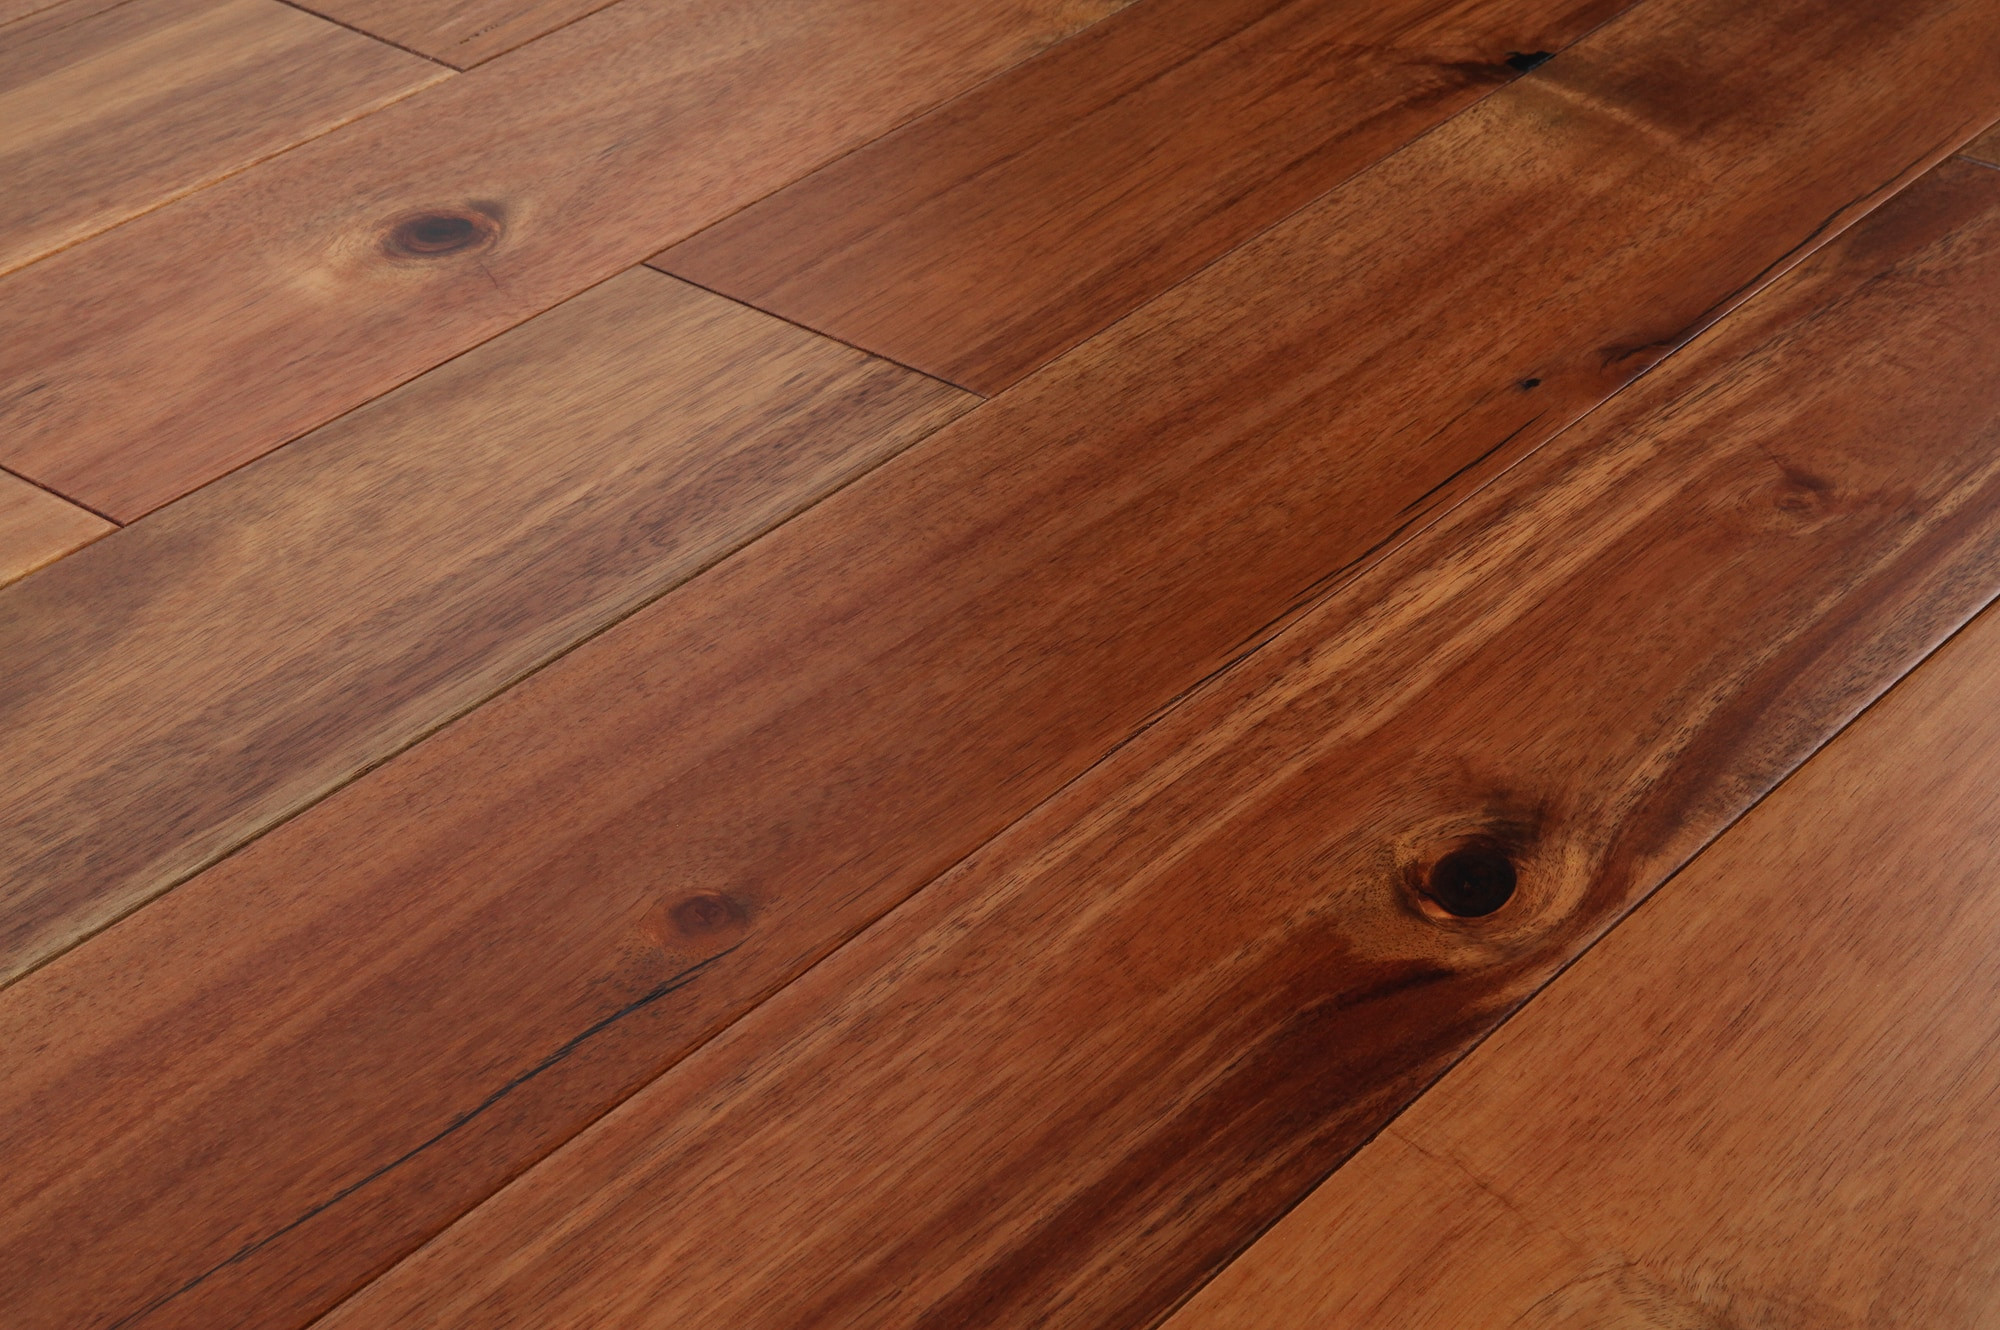 tobacco road acacia hardwood flooring of hardwood new acacia hardwood pertaining to palmer donavin flooring training outline 1 hardwood flooring construction solid • typically 3 4 thick but can be found in other thicknesses acacia species